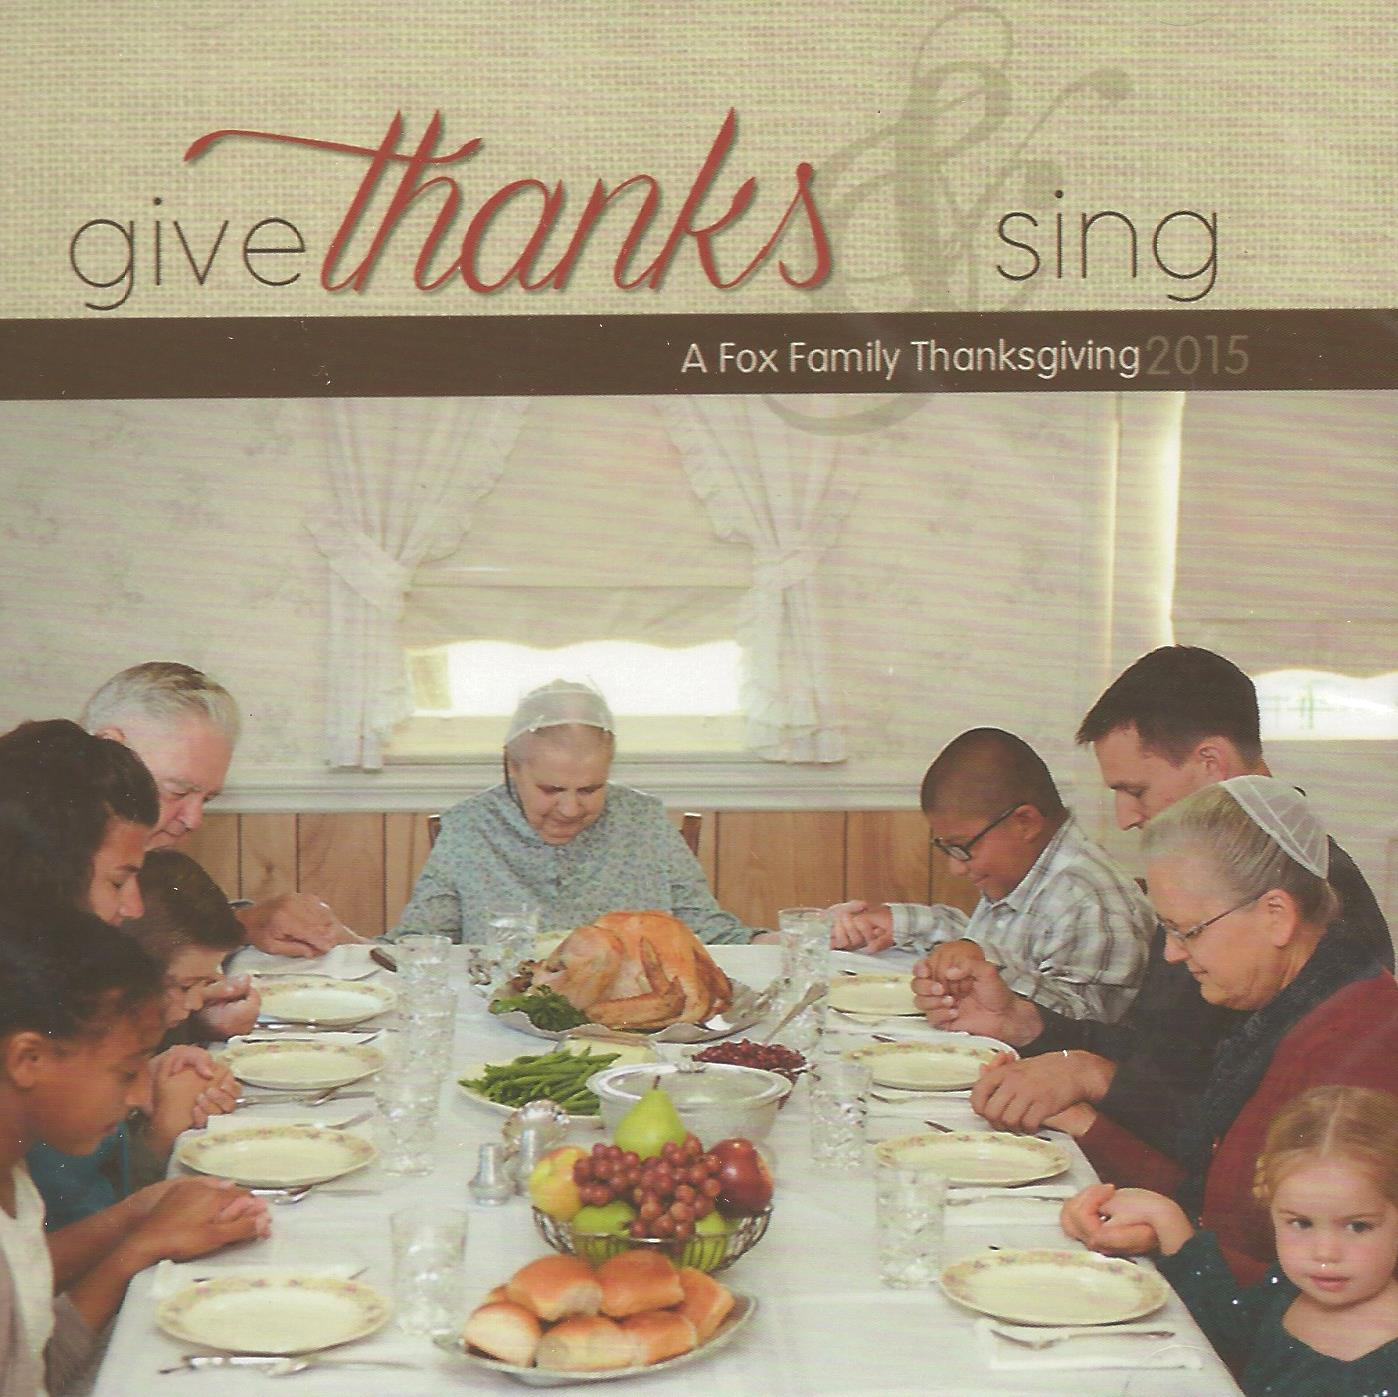 GIVE THANKS AND SING